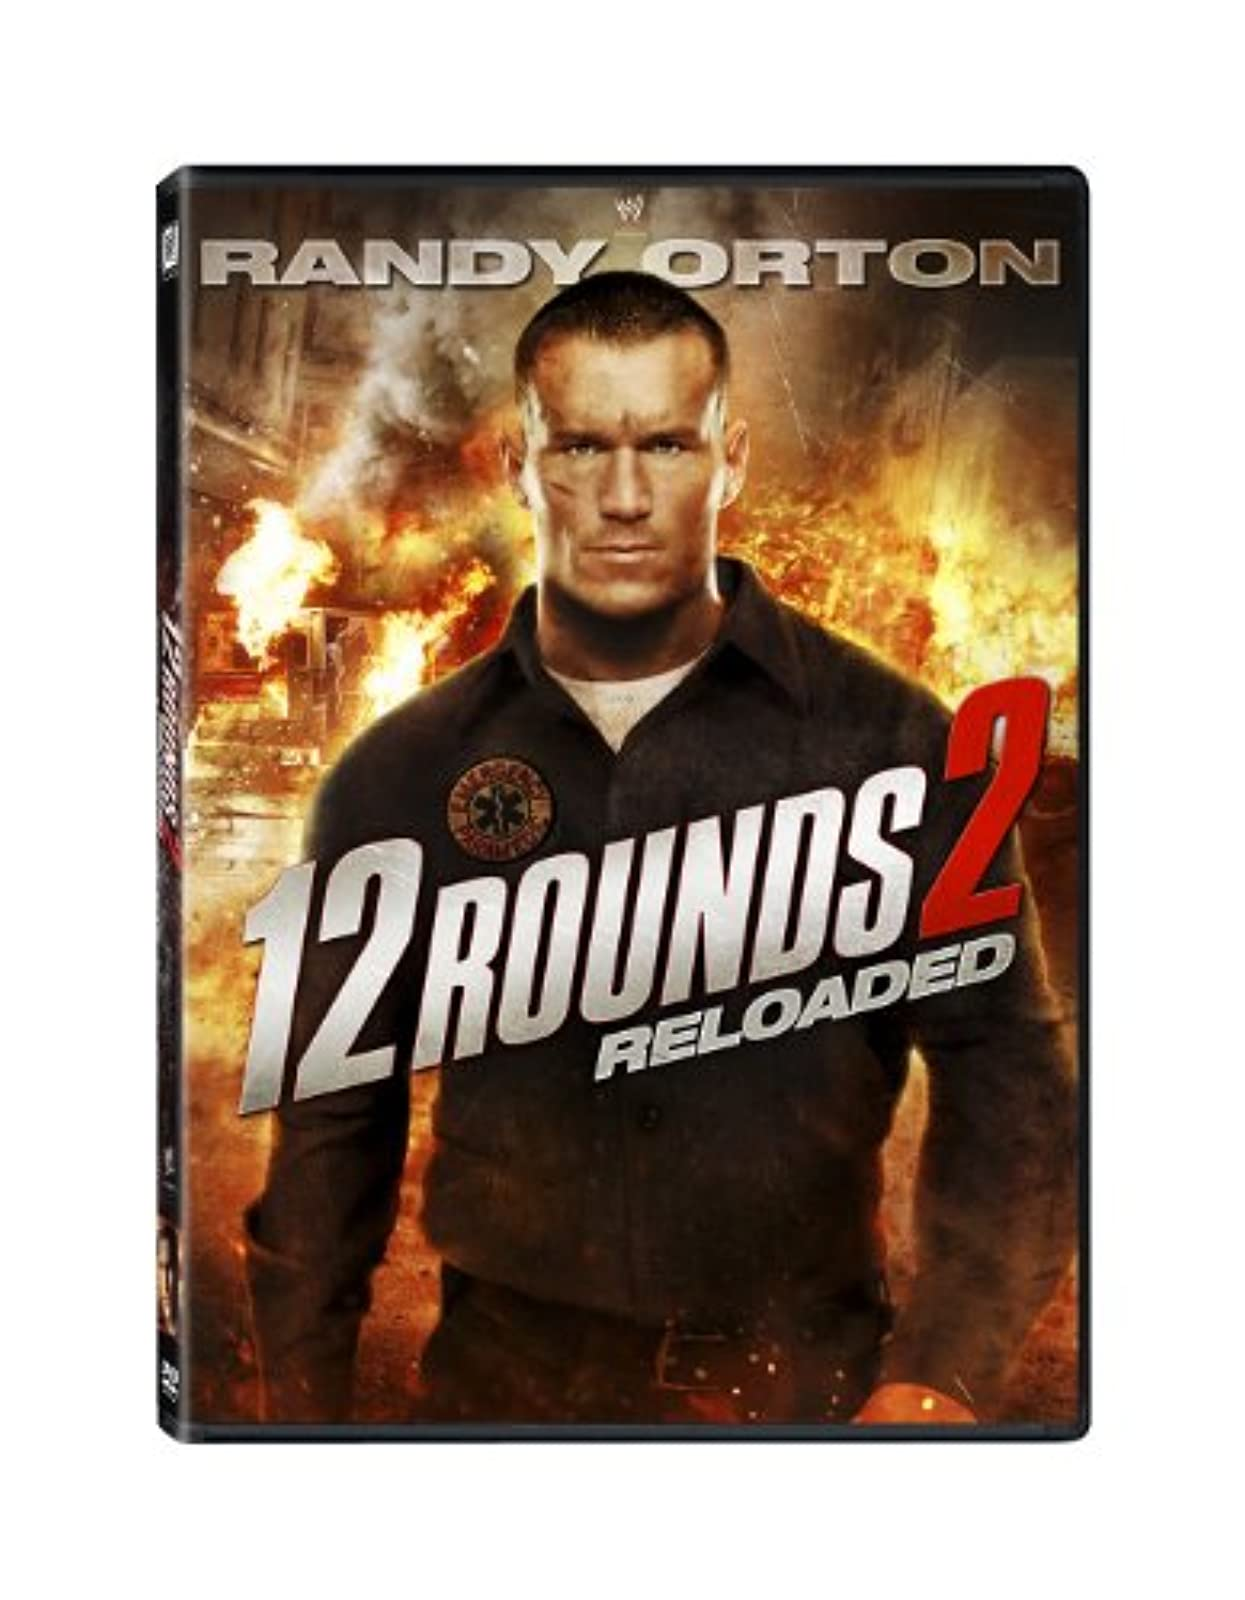 12 Rounds 2: Reloaded On DVD With Randy Orton